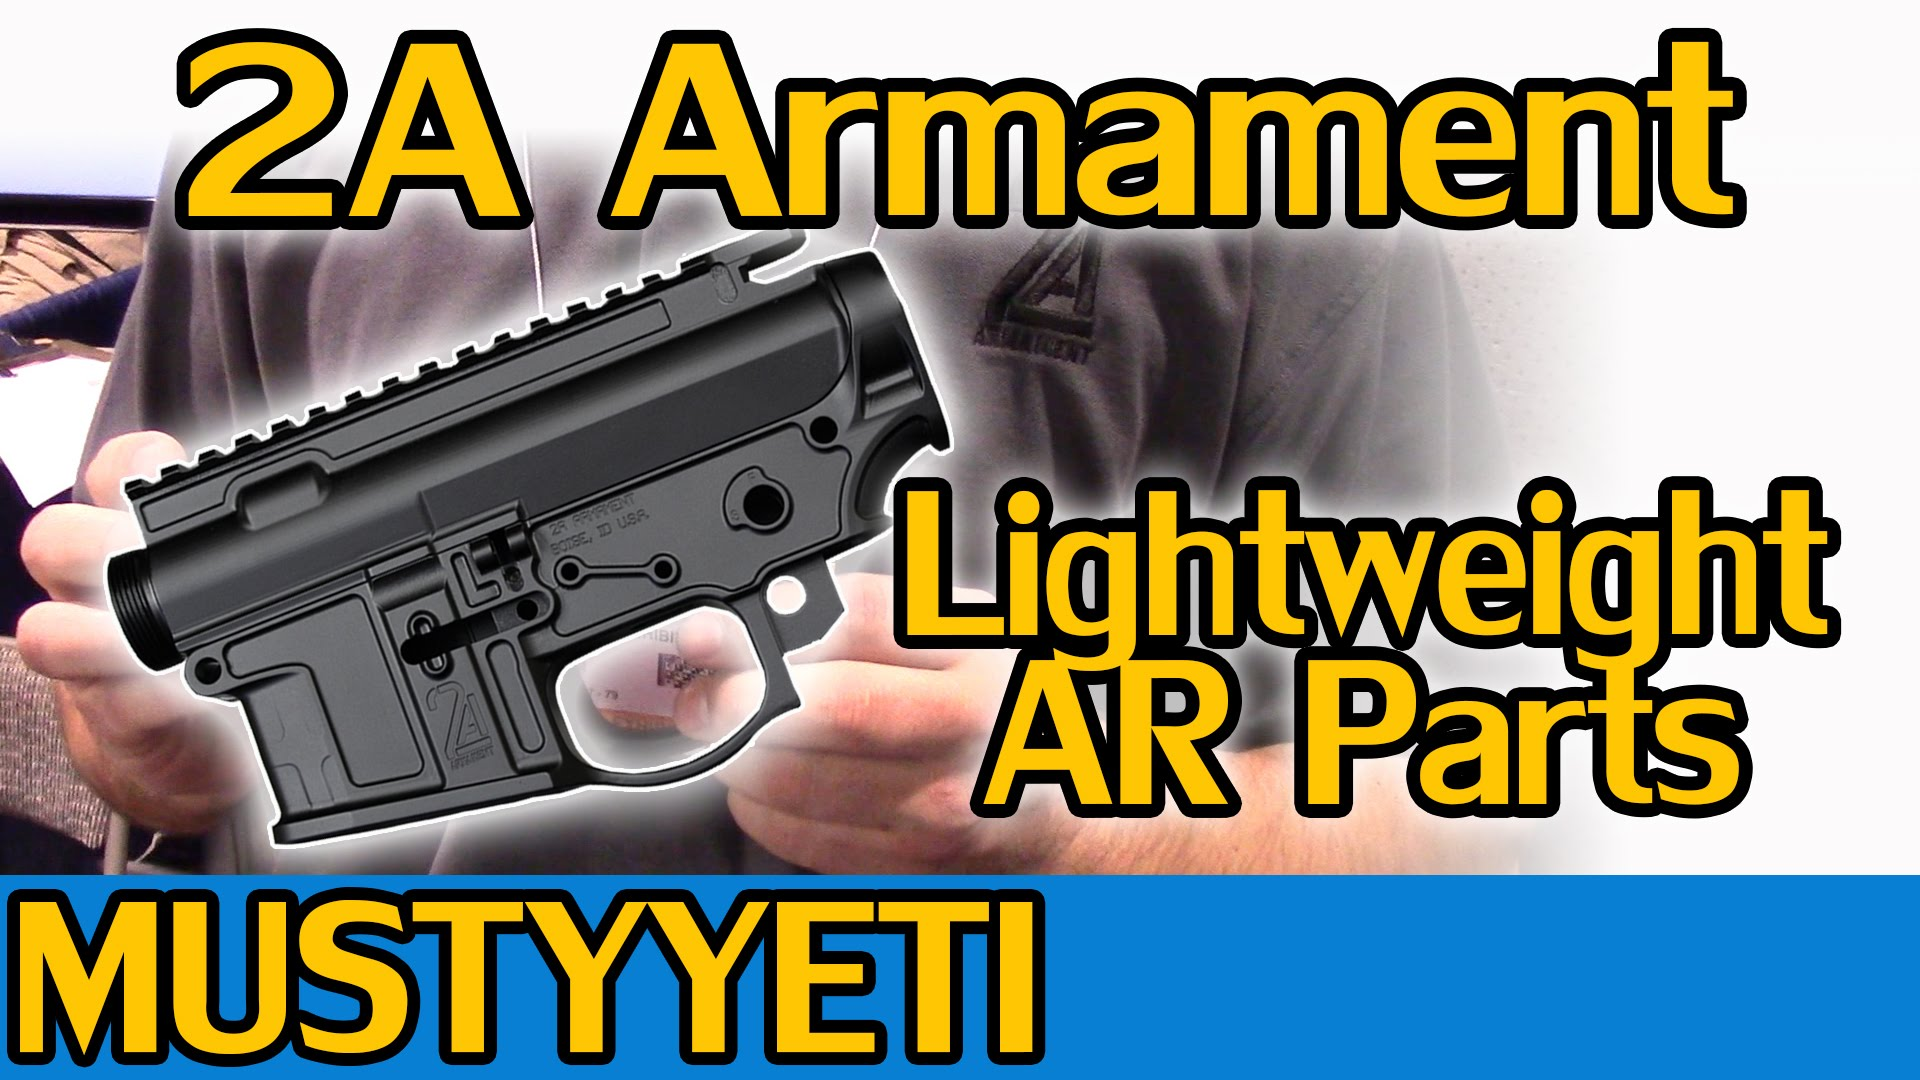 2A Armament | ShotShow | MustyYeti